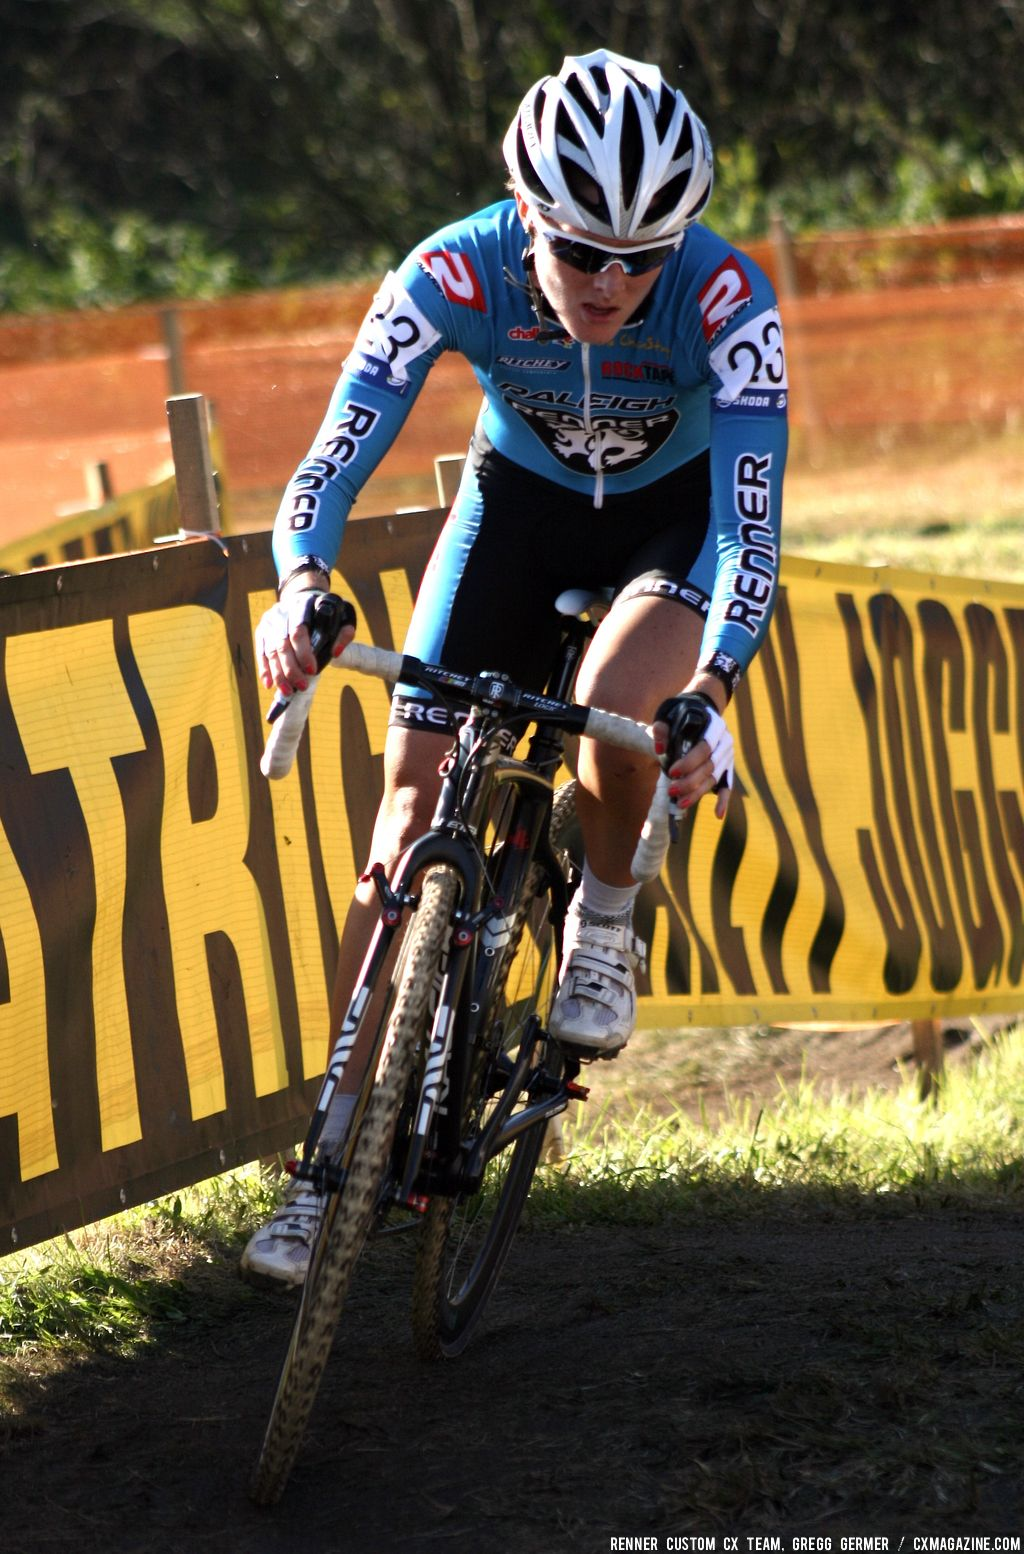 Gabby Day takes a turn. © Renner Custom CX Team, Gregg Germer